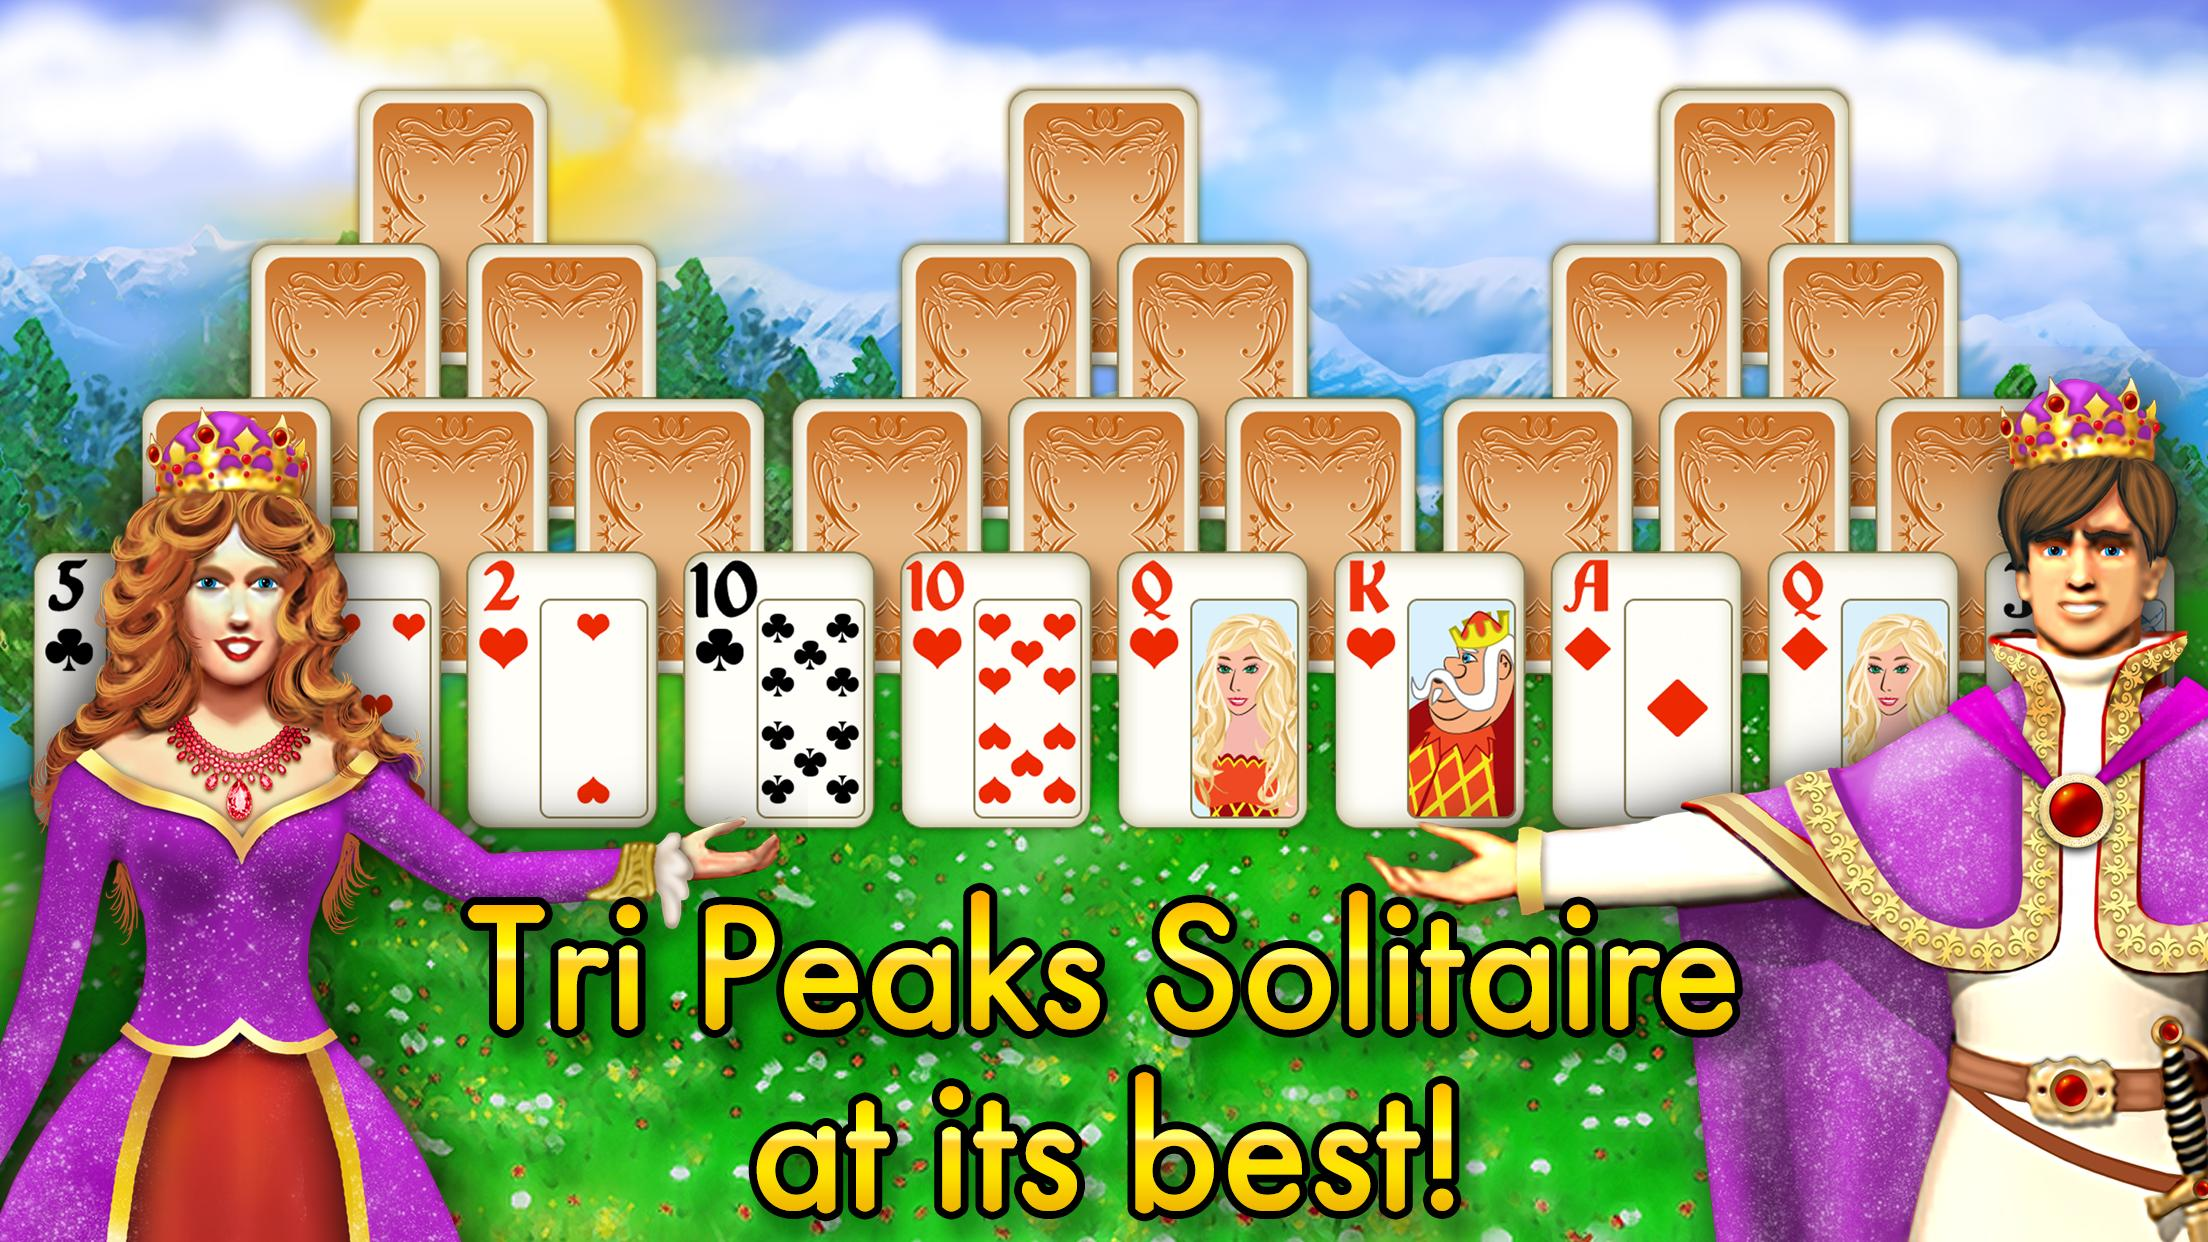 Magic Towers Solitaire Tri Peaks 1.53.21-g Screenshot 1